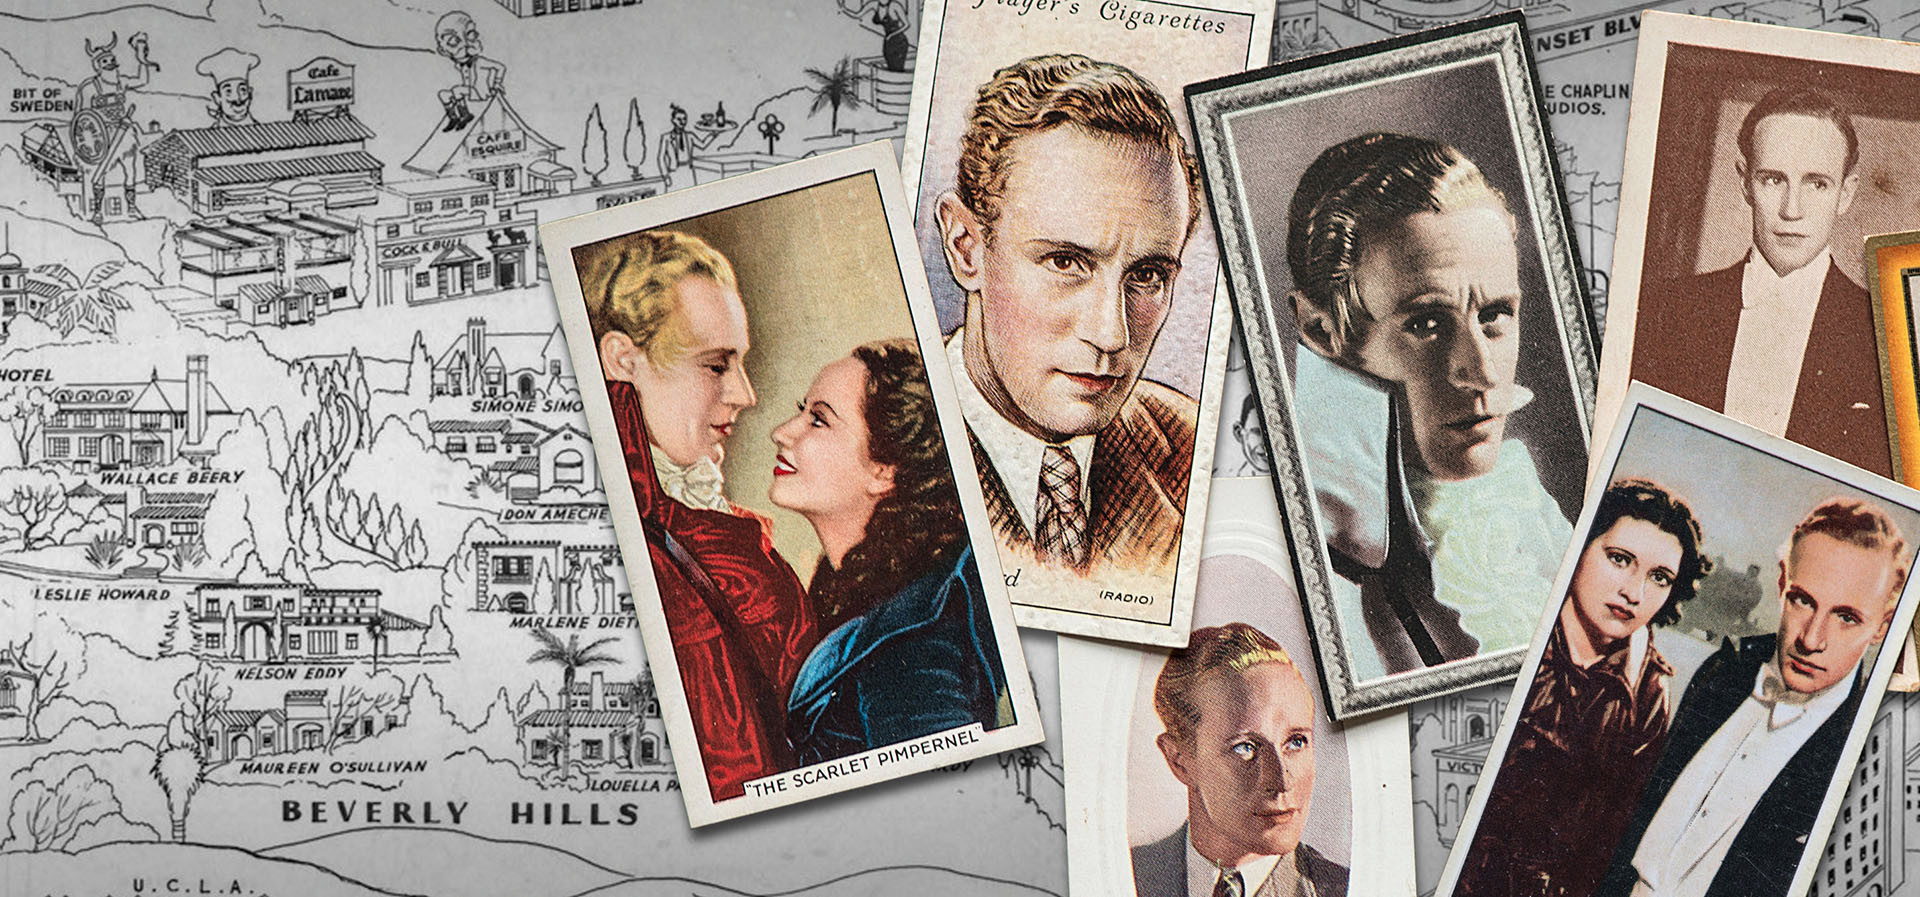 Cigarette card images of Leslie Howard